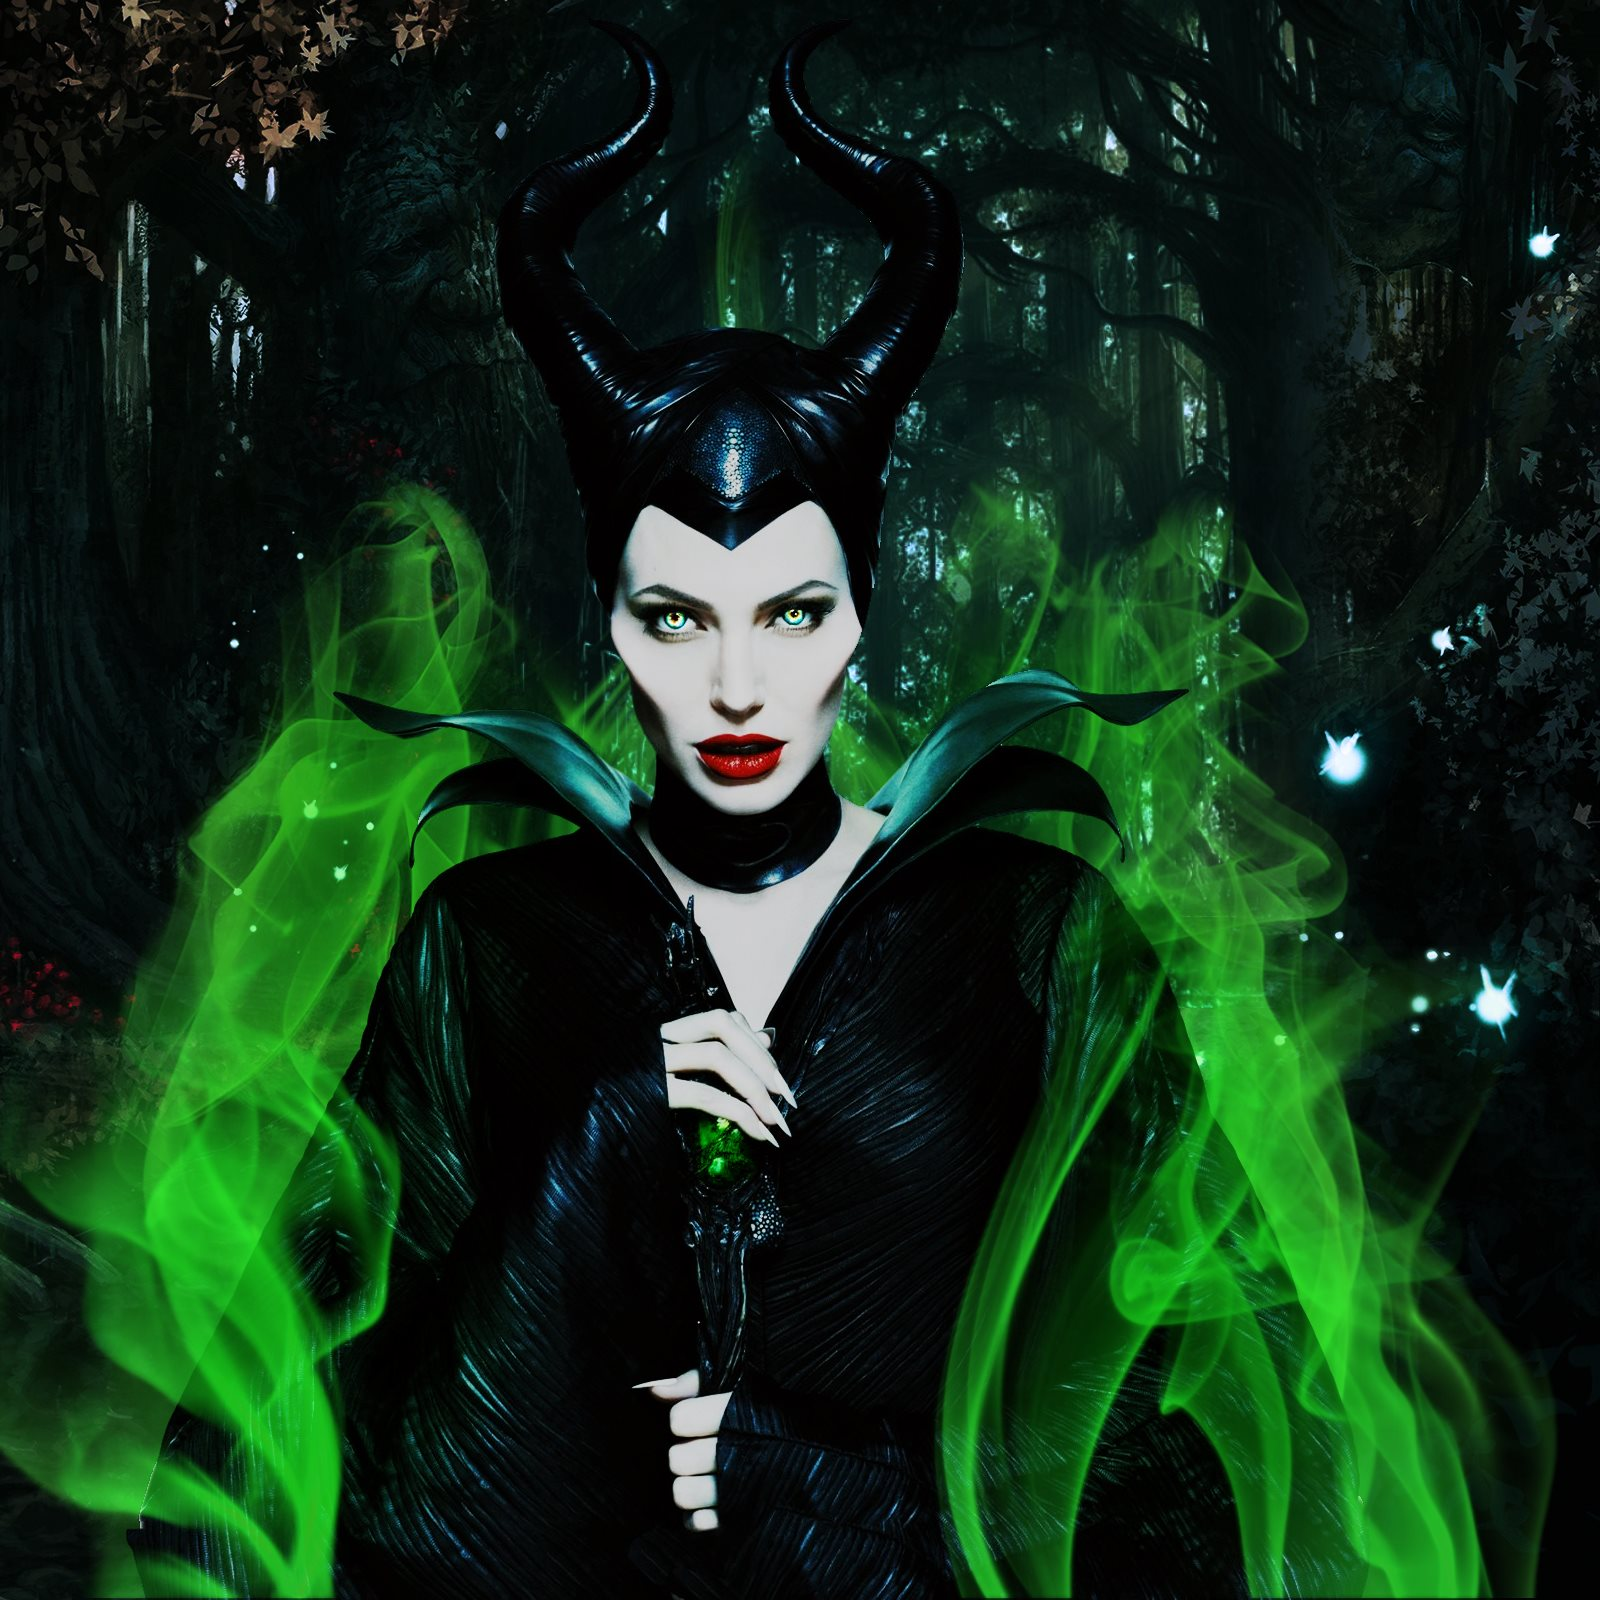 Maleficent Backgrounds Maleficent Wallpaper - Maleficent Angelina Jolie , HD Wallpaper & Backgrounds